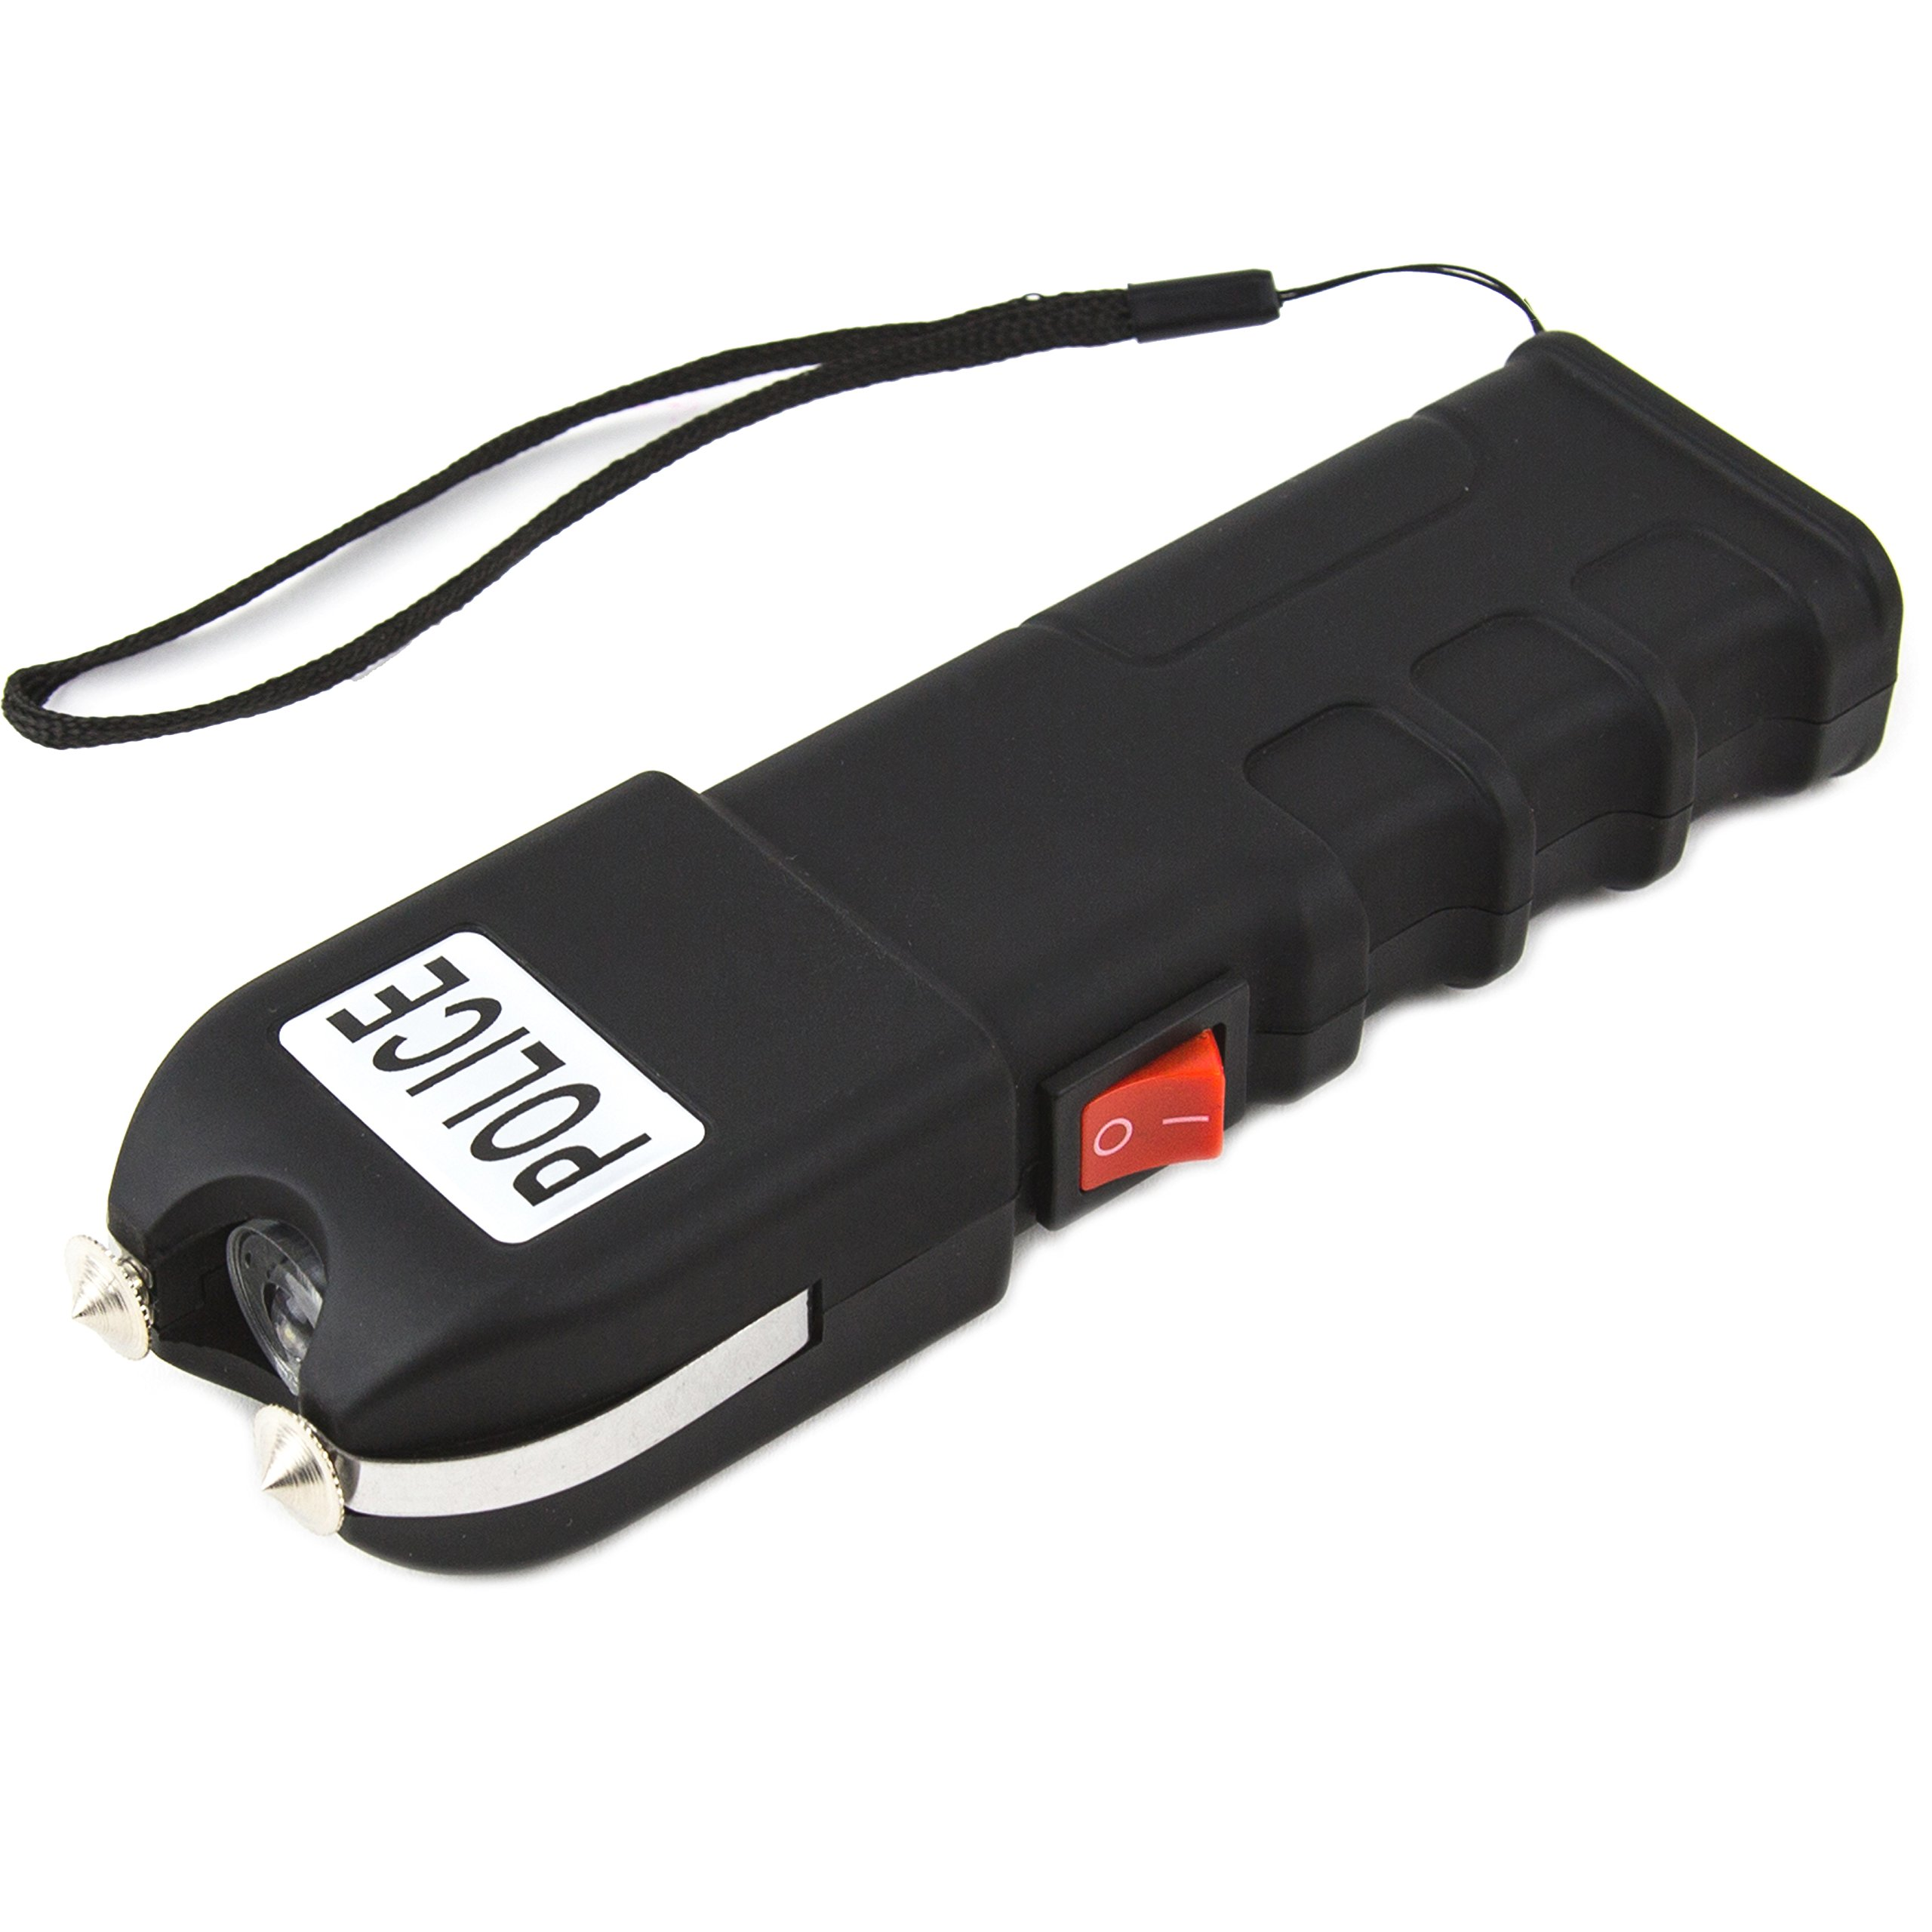 Police 928 - Max Voltage Heavy Duty Stun Gun - Rechargeable With LED Flashlight and Case